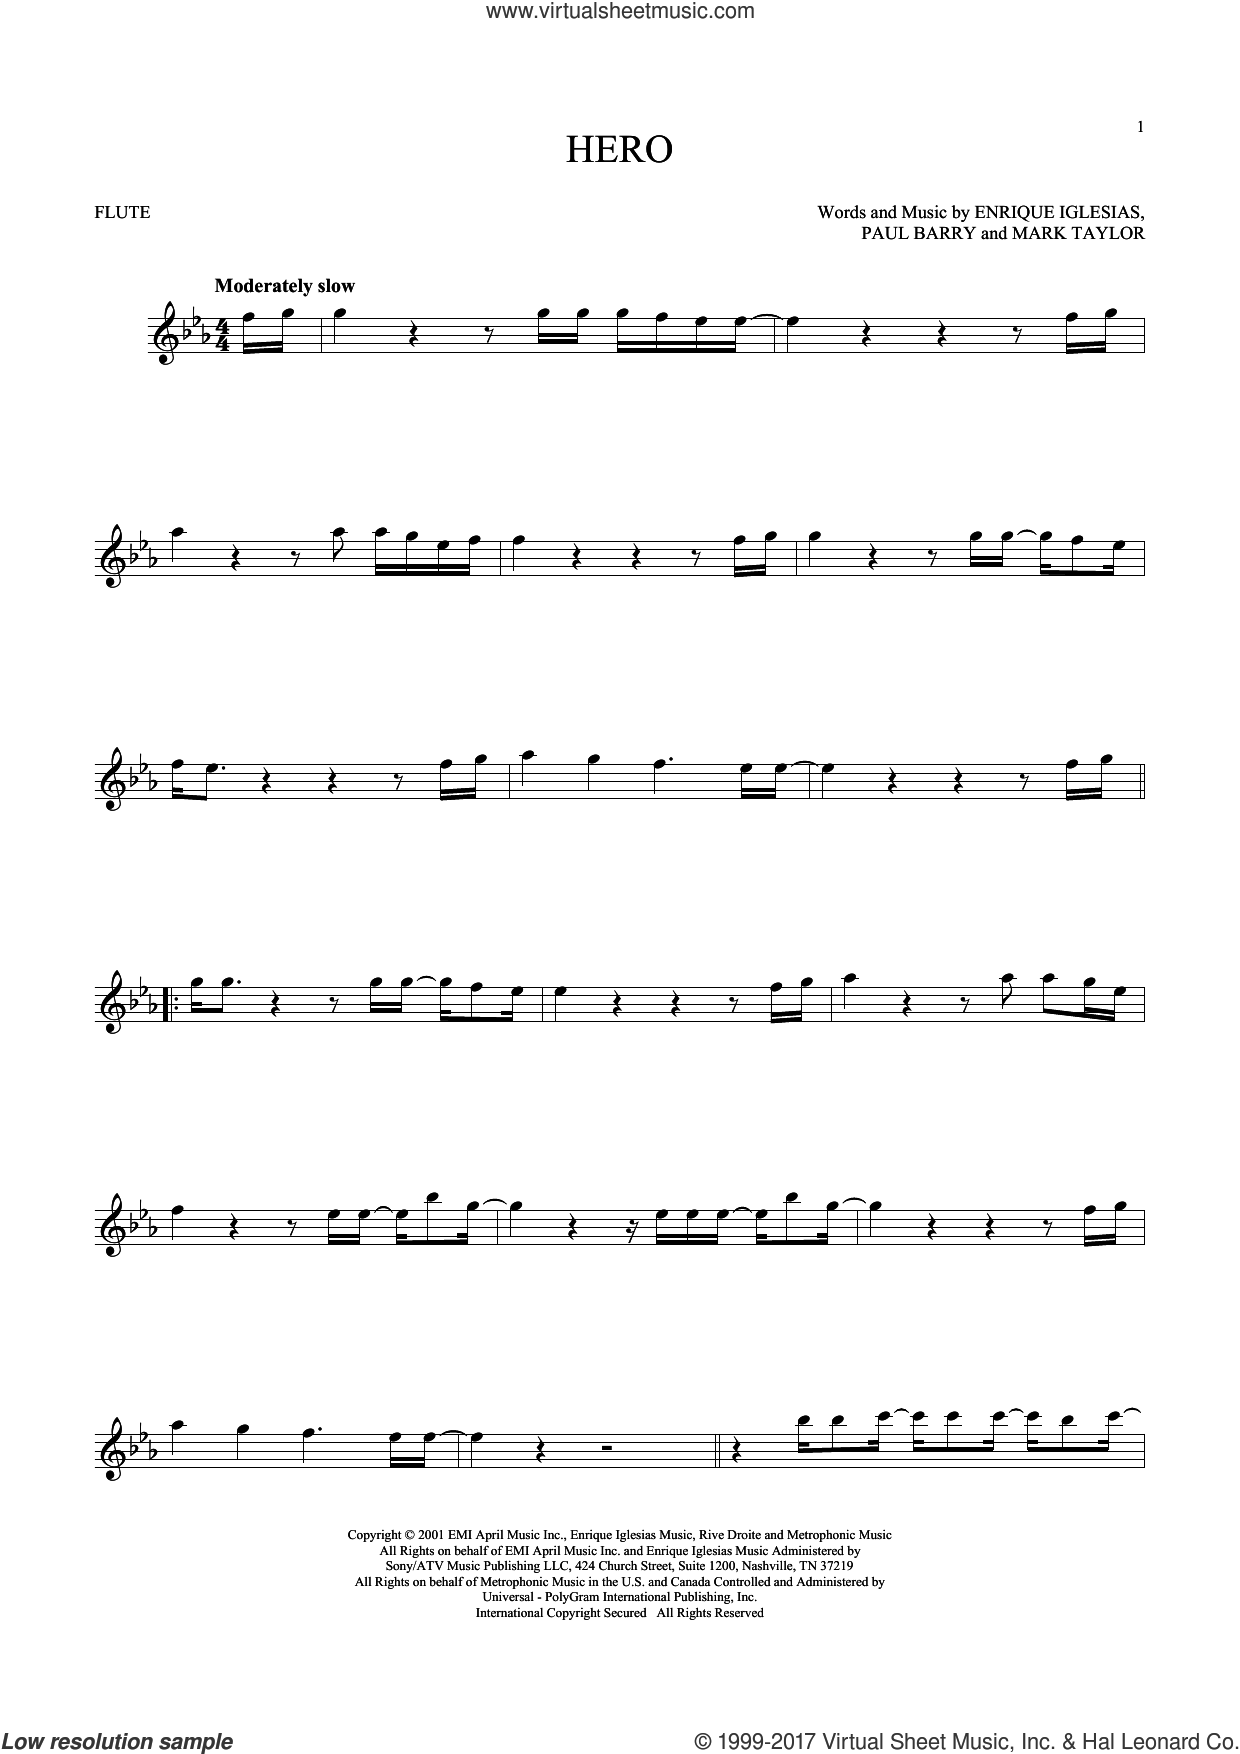 Hero sheet music for flute solo by Enrique Iglesias, Mark Taylor and Paul Barry, intermediate skill level